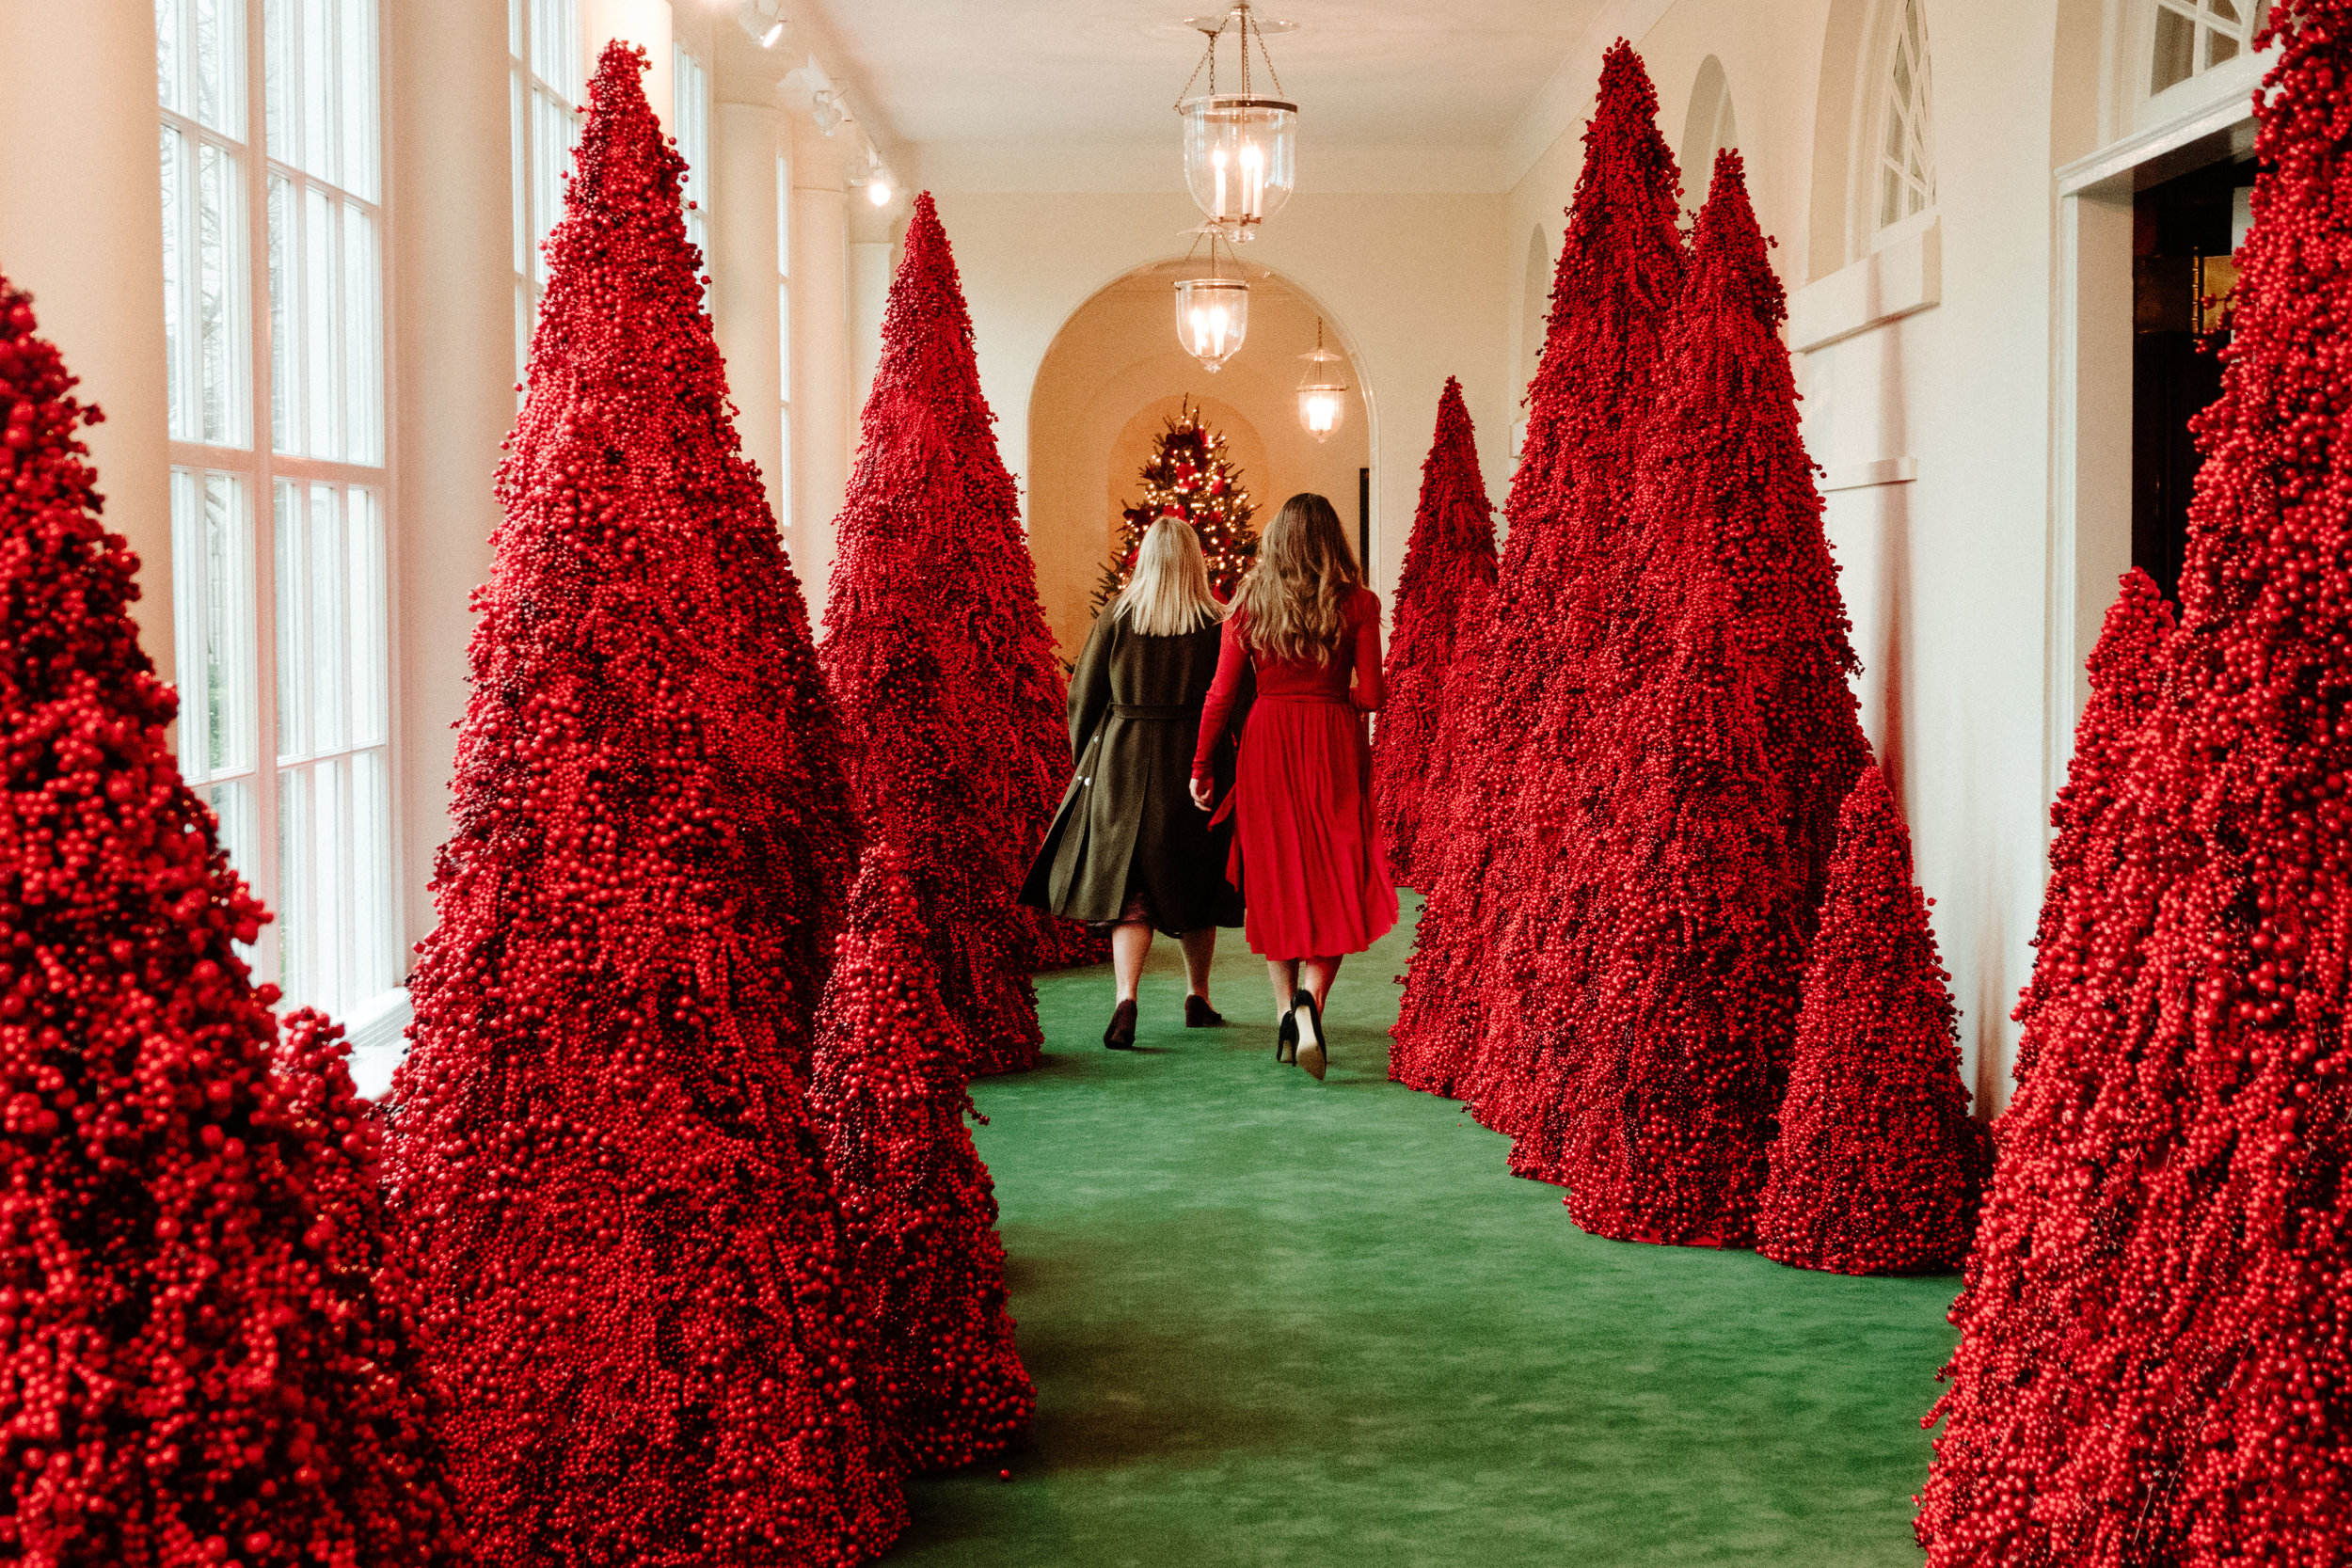 A pair of women walk down the freshly-decorated Ground Floor Corridor in the East Wing of the White House in Washington, D.C. on November 25, 2018.